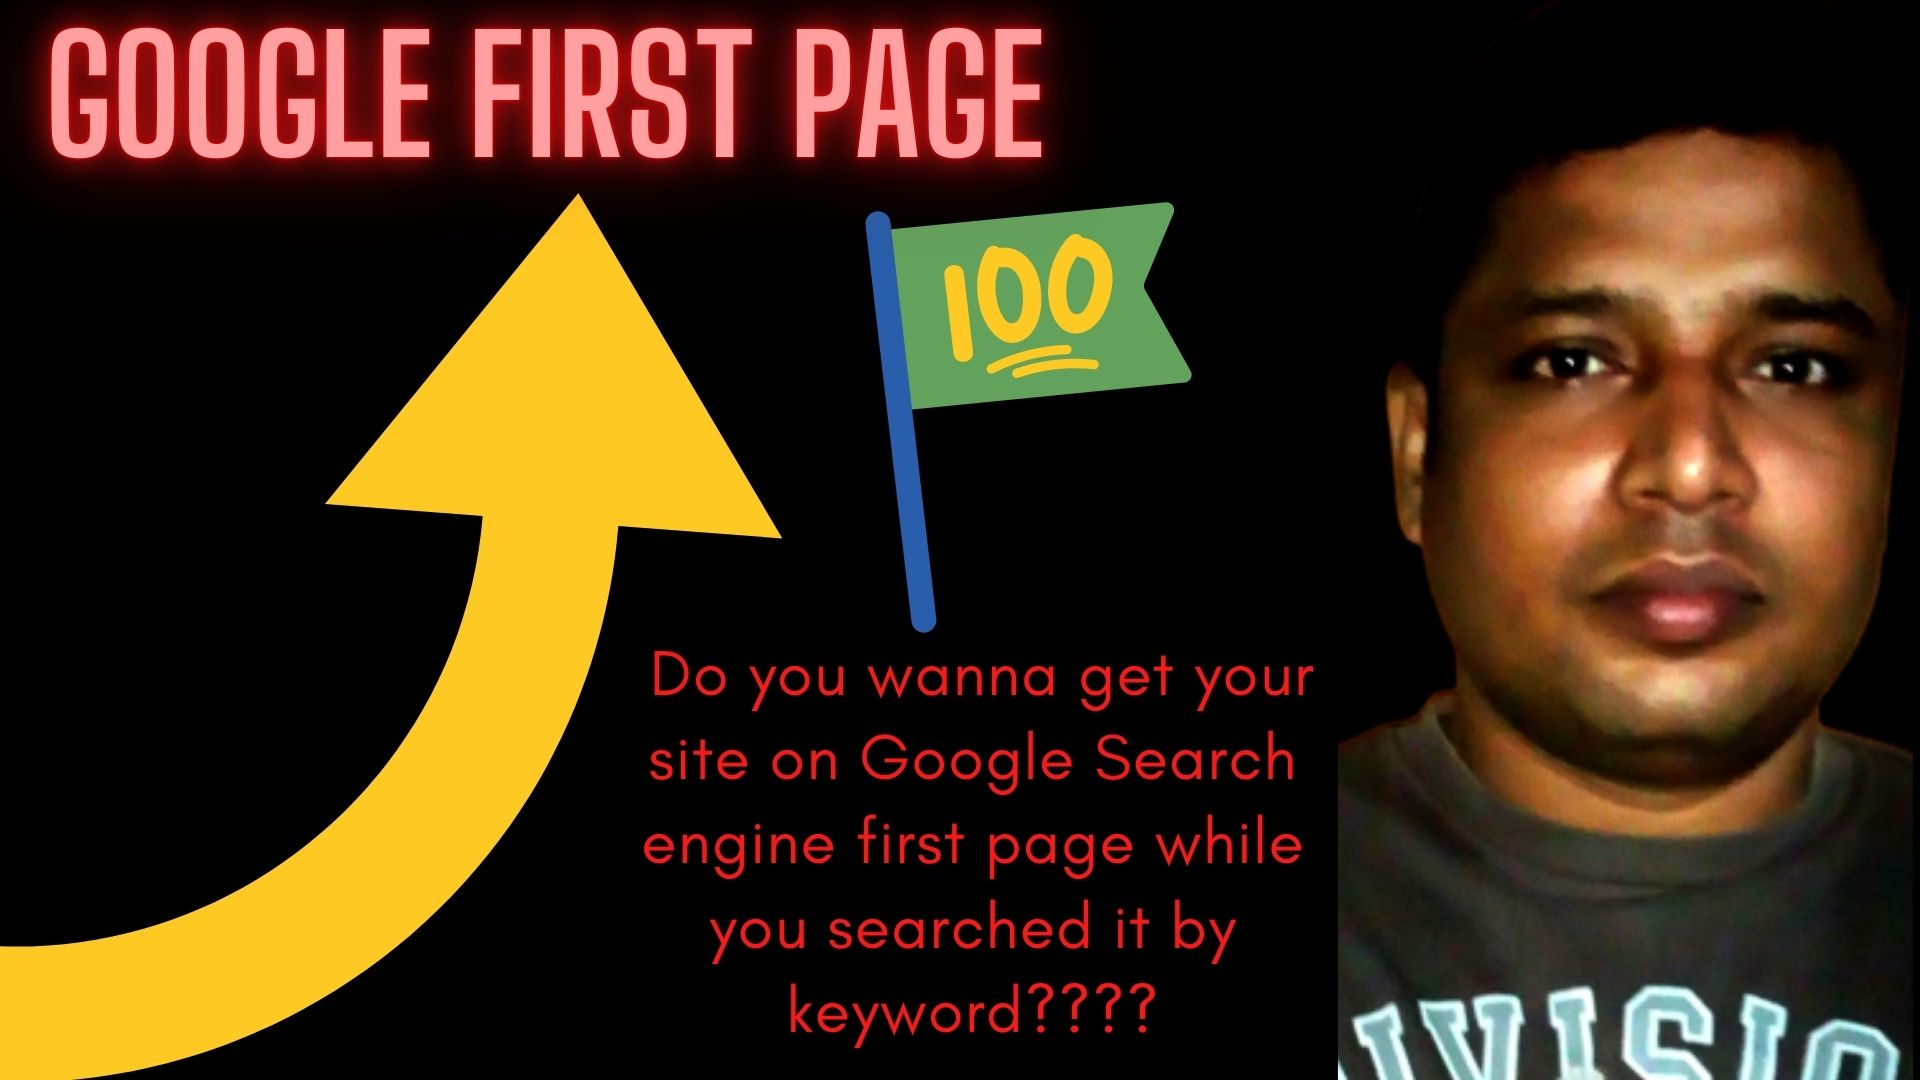 I will bring Google First Page to your site